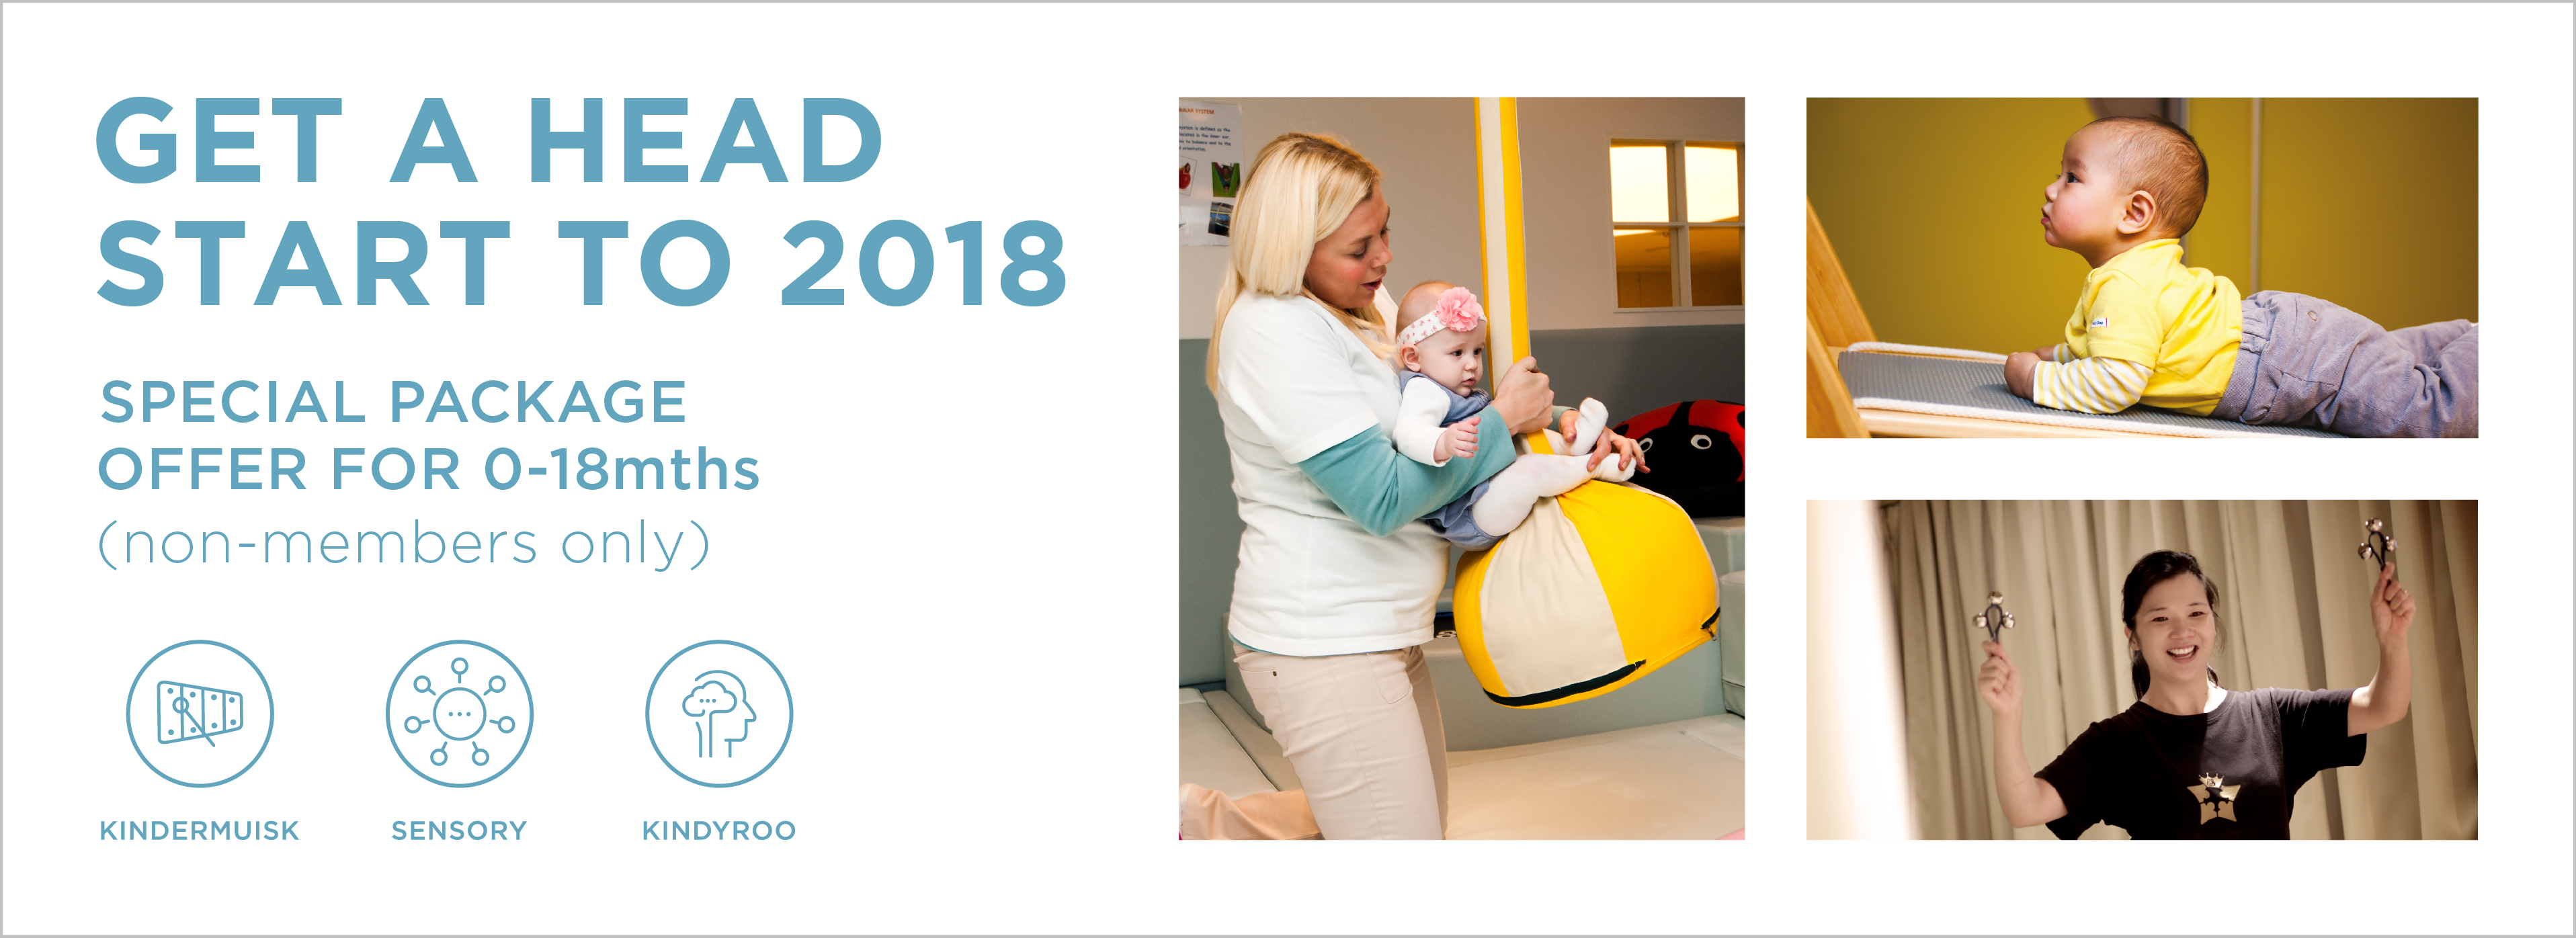 https://spring-learning.com.hk/wp-content/uploads/2017/02/SPRING_baby_class_promotion_Jan2018_920x335px-02.jpg